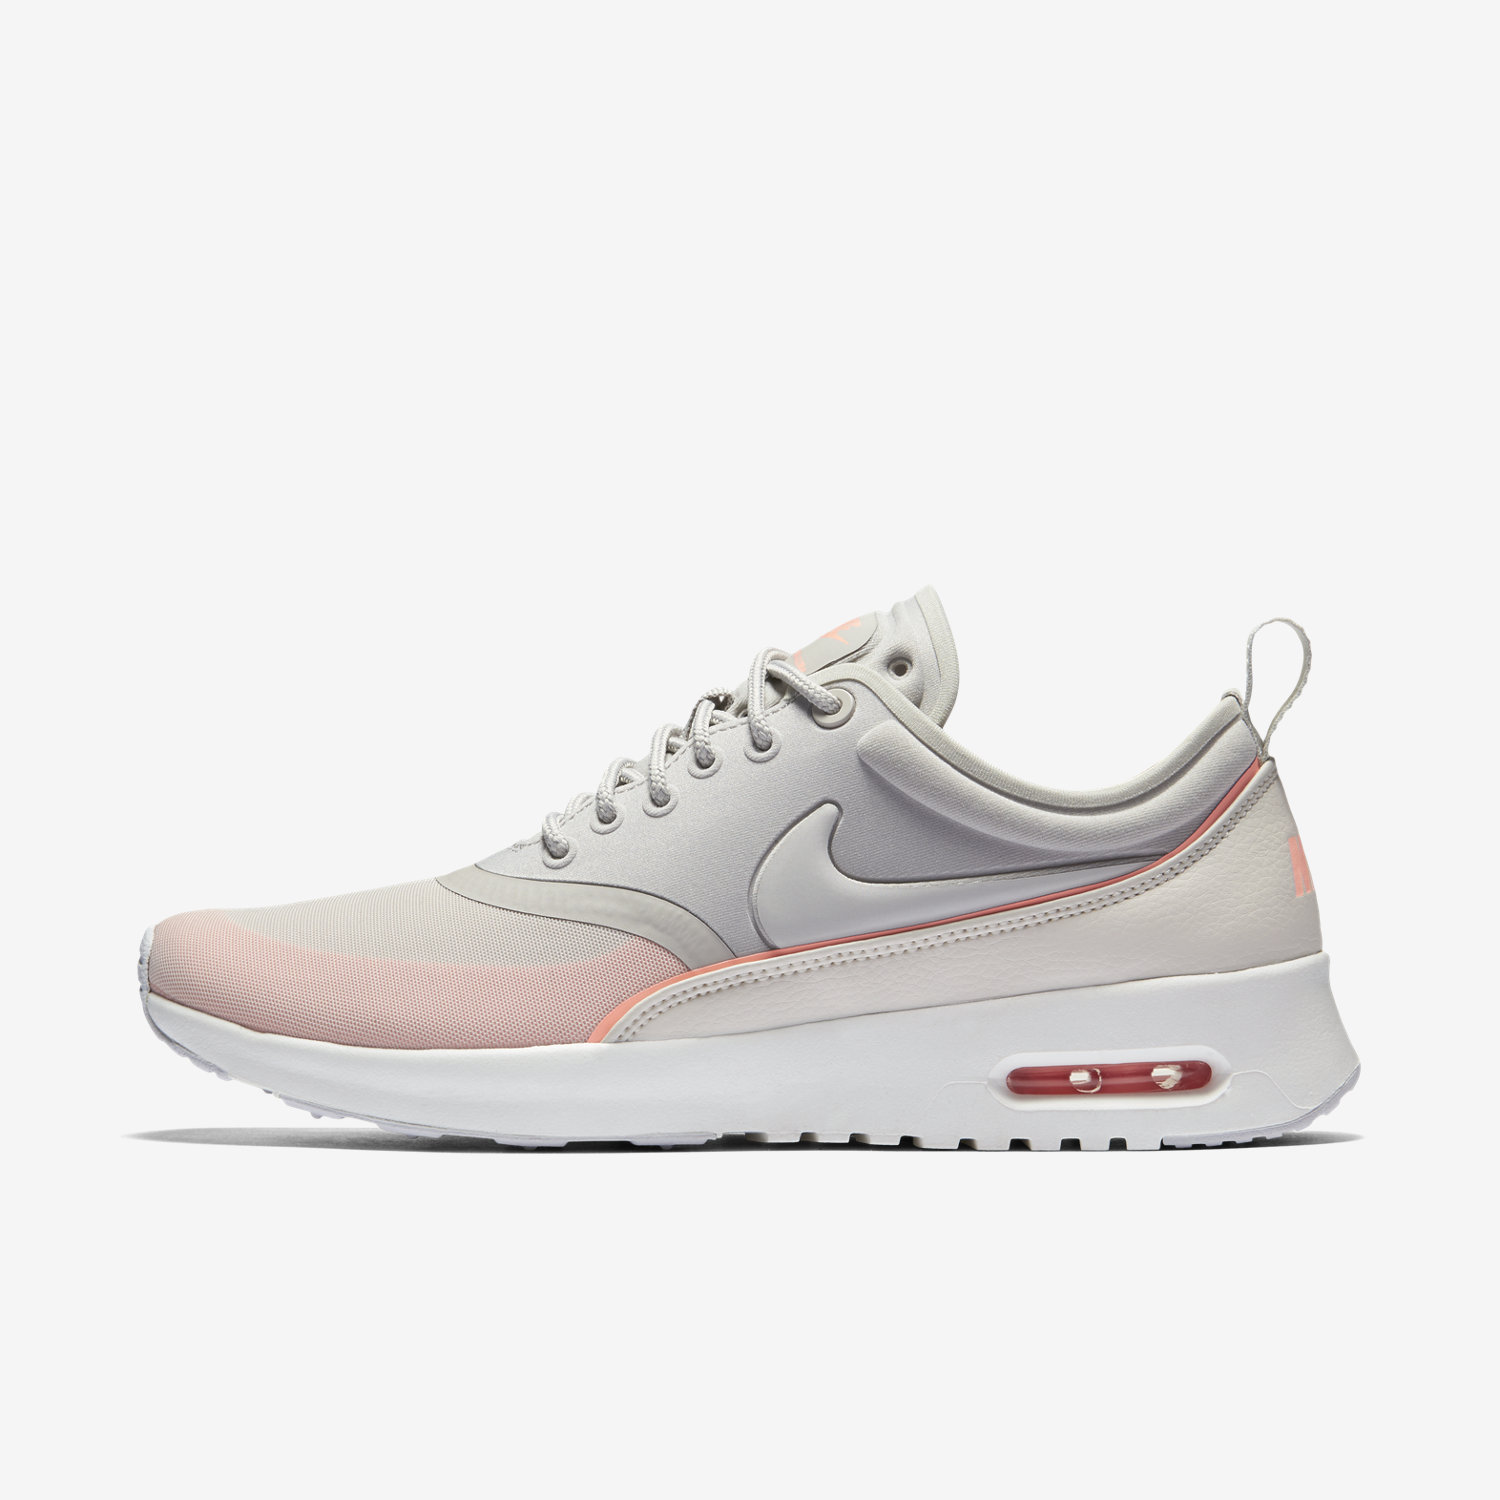 nike air max thea ultra. Black Bedroom Furniture Sets. Home Design Ideas